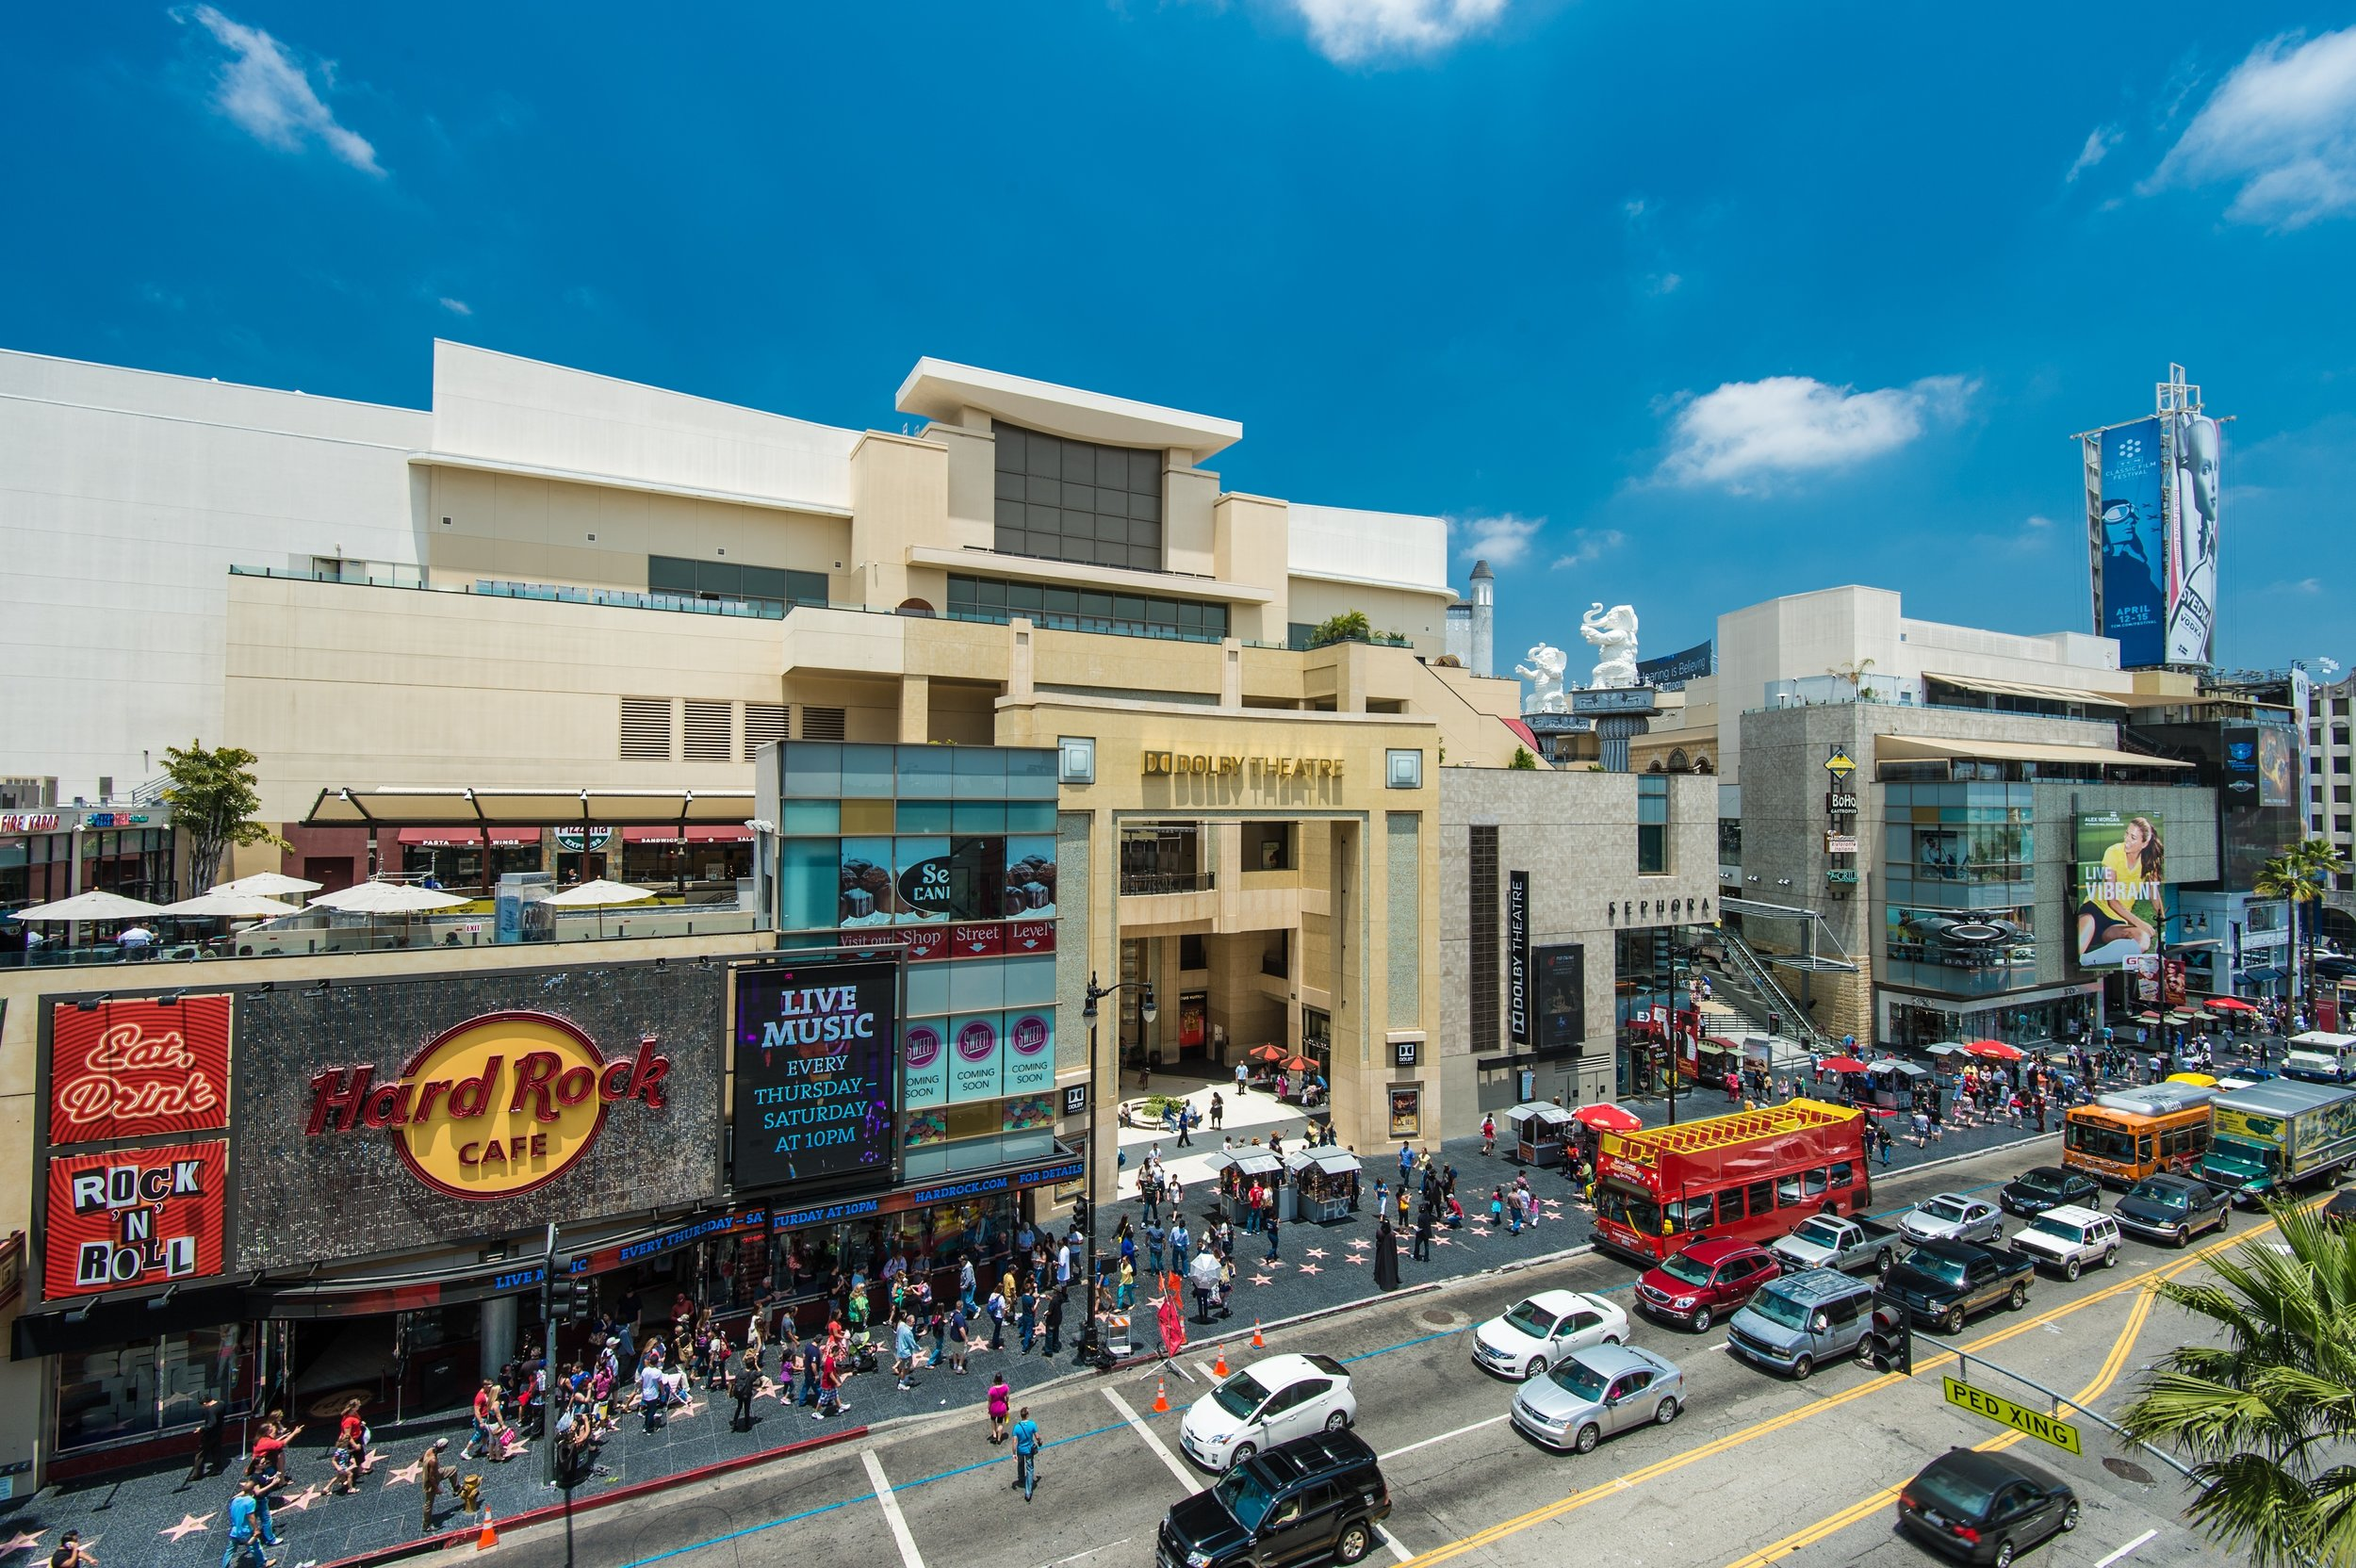 H&H Blvd. with Dolby Theatre arch.JPG